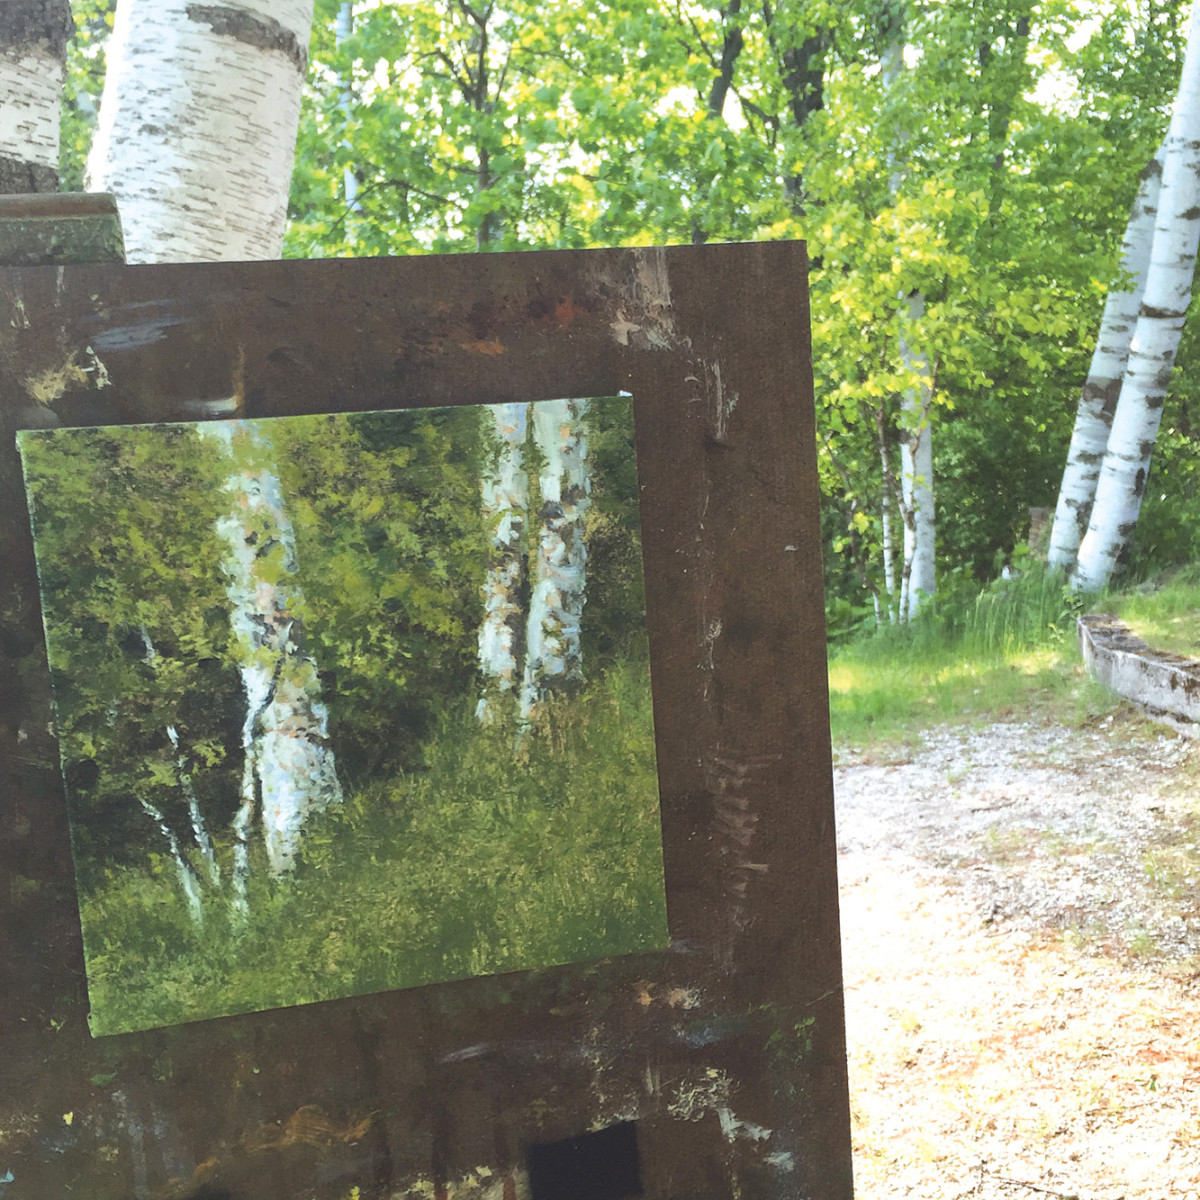 Painting en plein air, in process among birch trees in Beulah, Michigan.